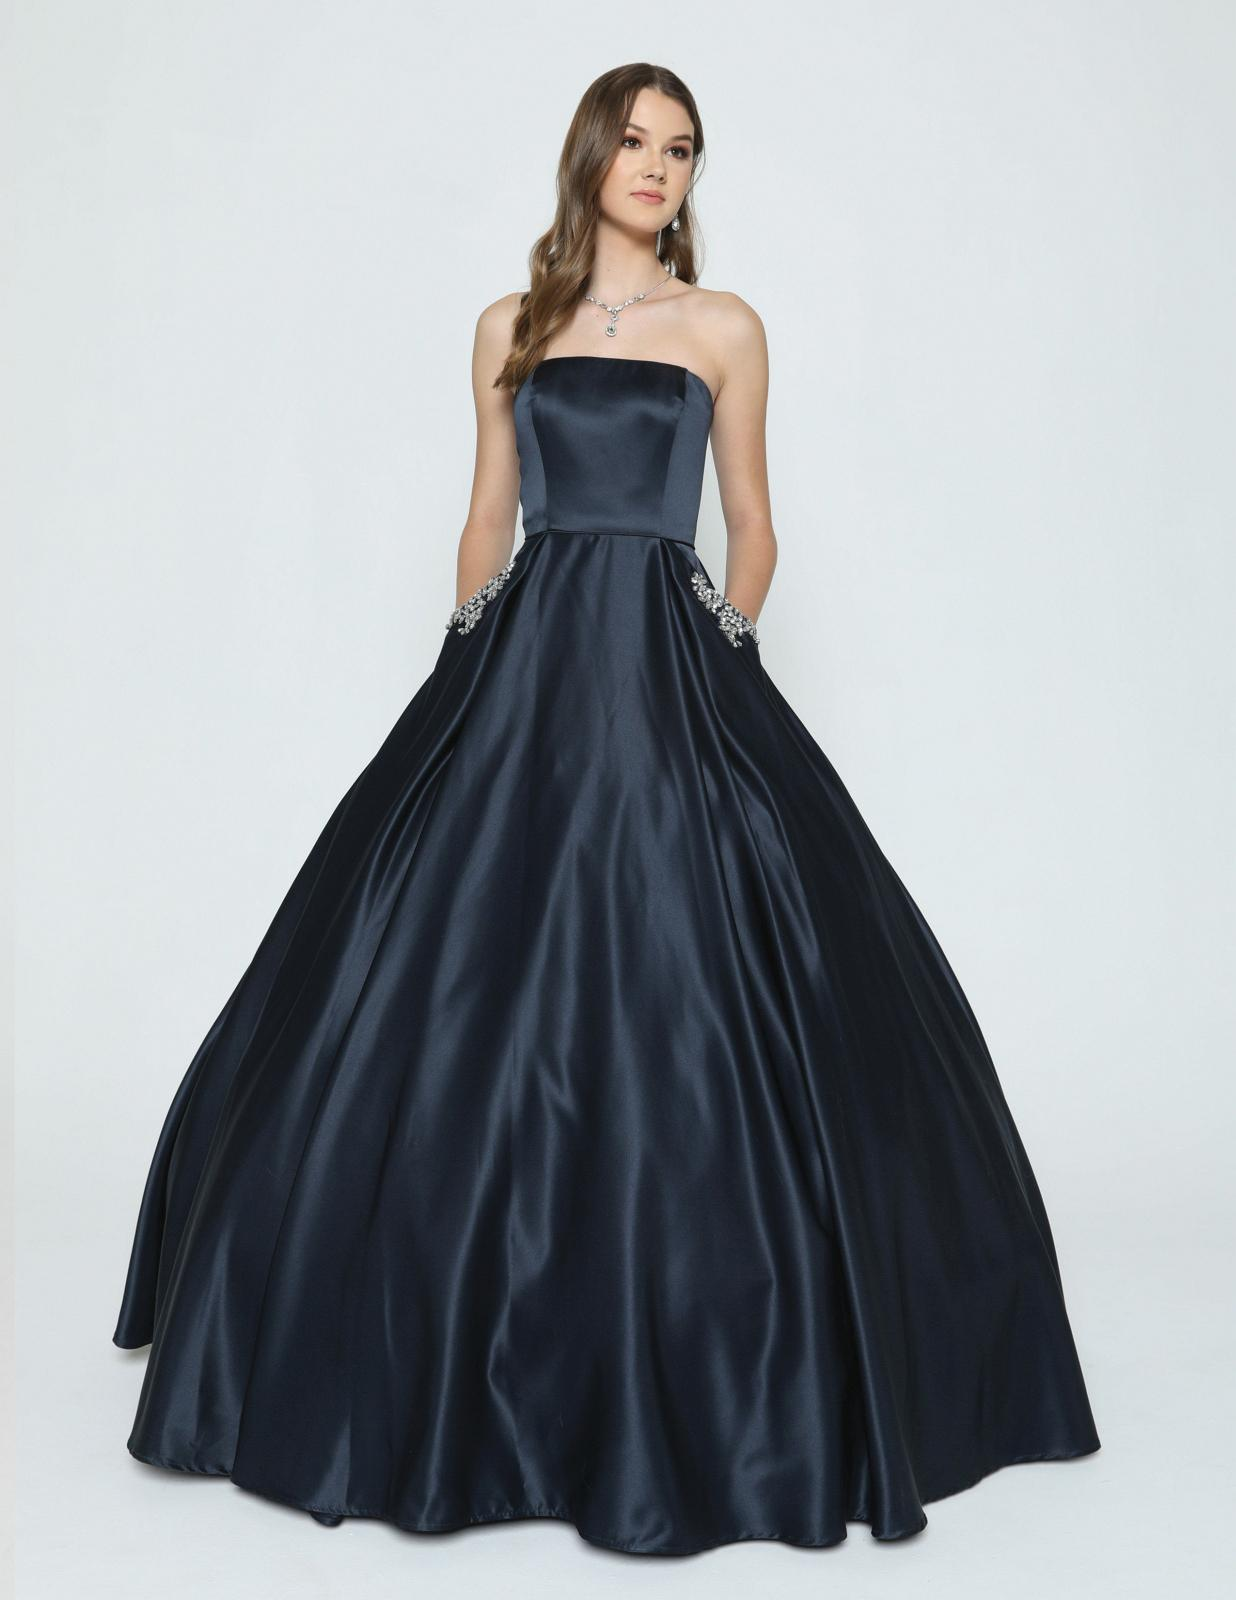 1ad225c06995 Navy Blue Strapless Prom Gown with Beaded Pockets. Tap to expand